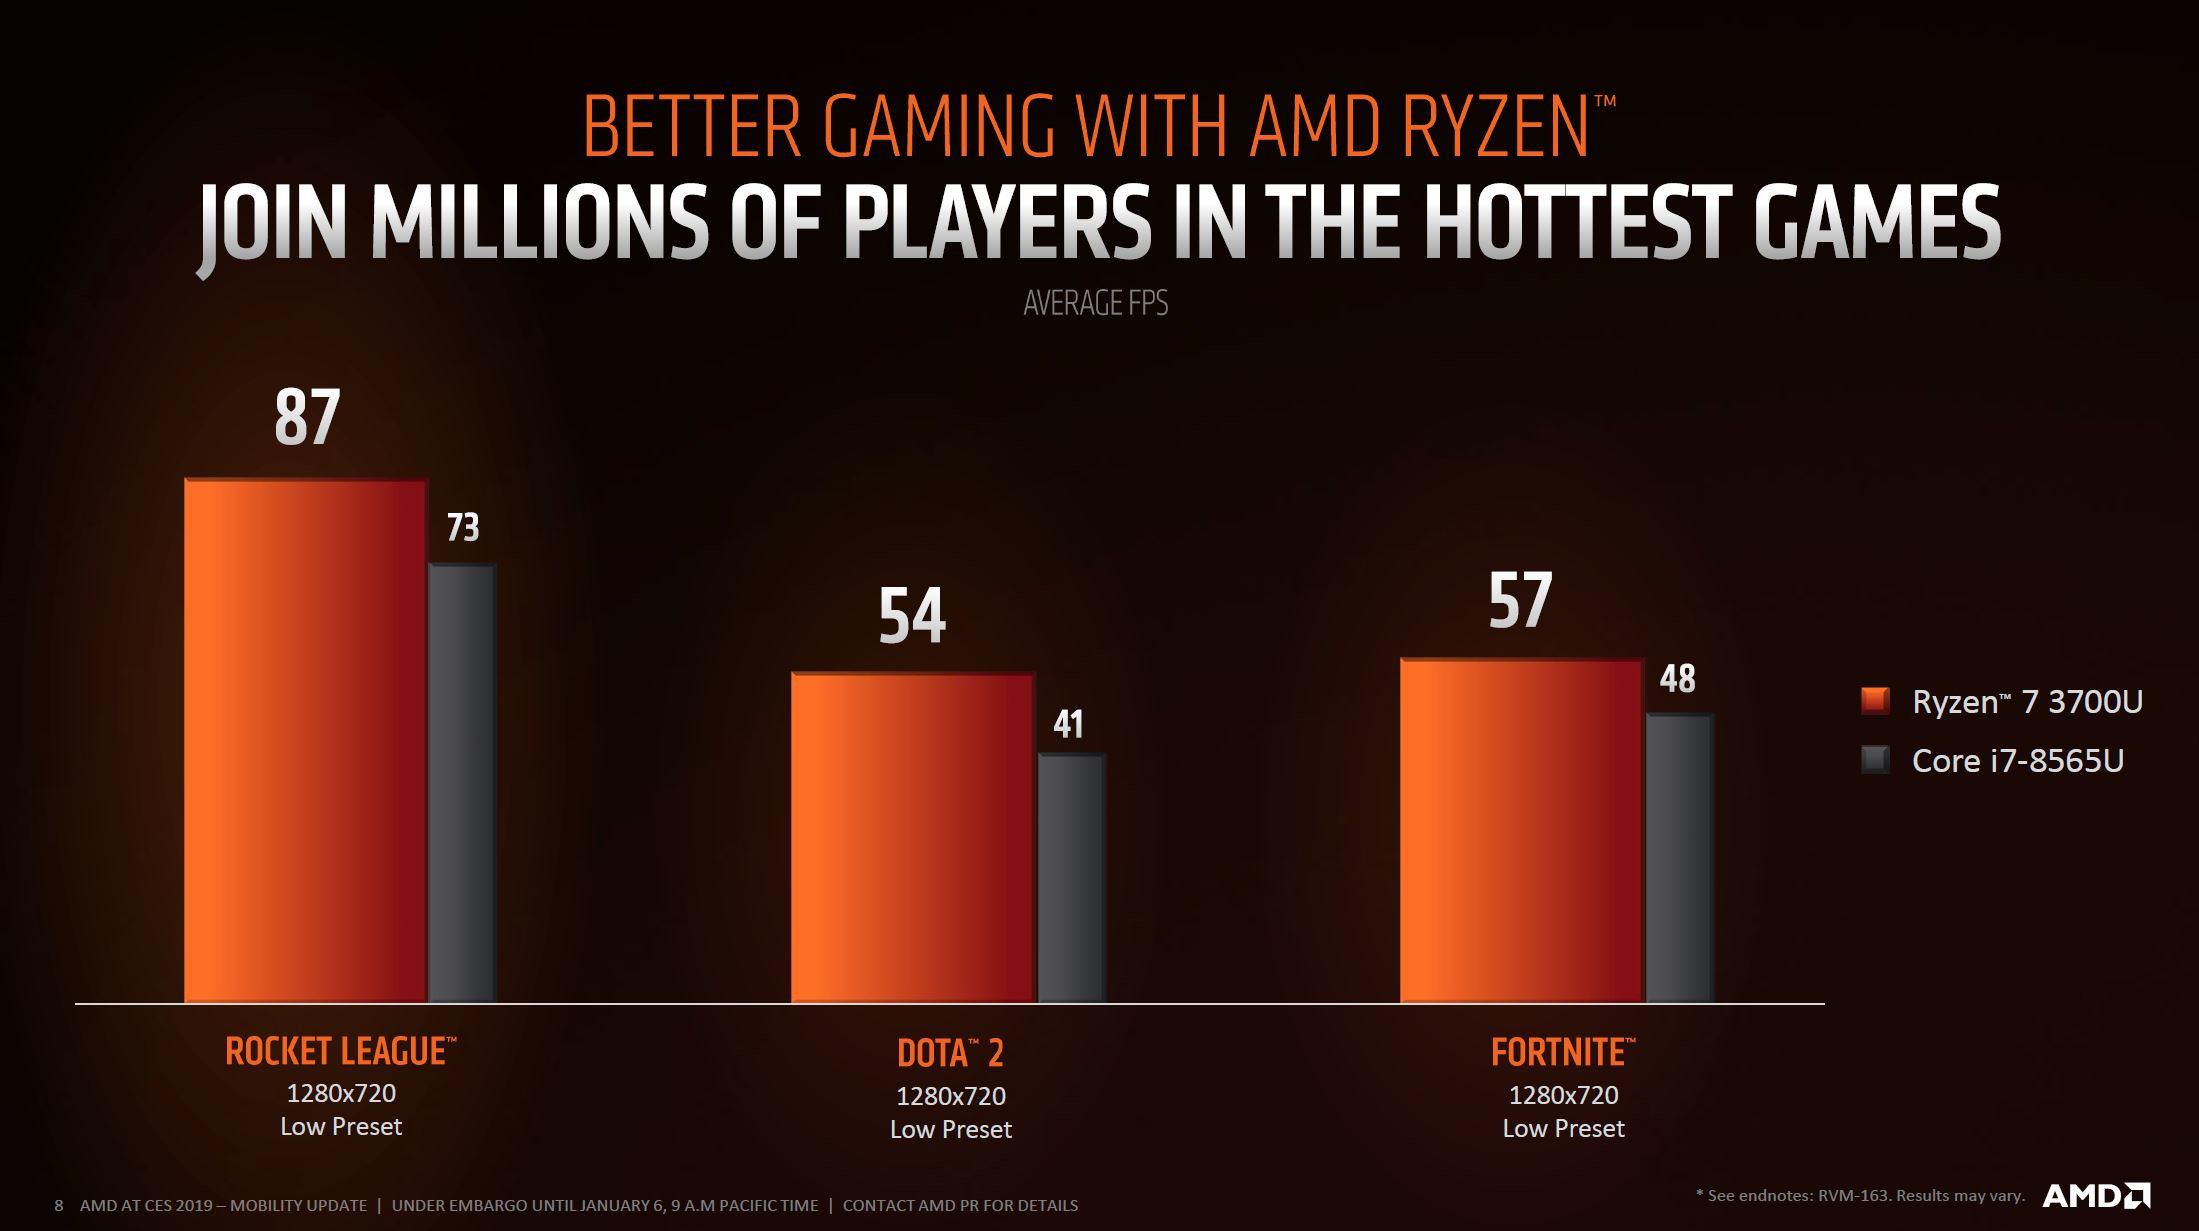 AMD Kicks-Off 2019 Offering Complete Mobile Portfolio with Ryzen